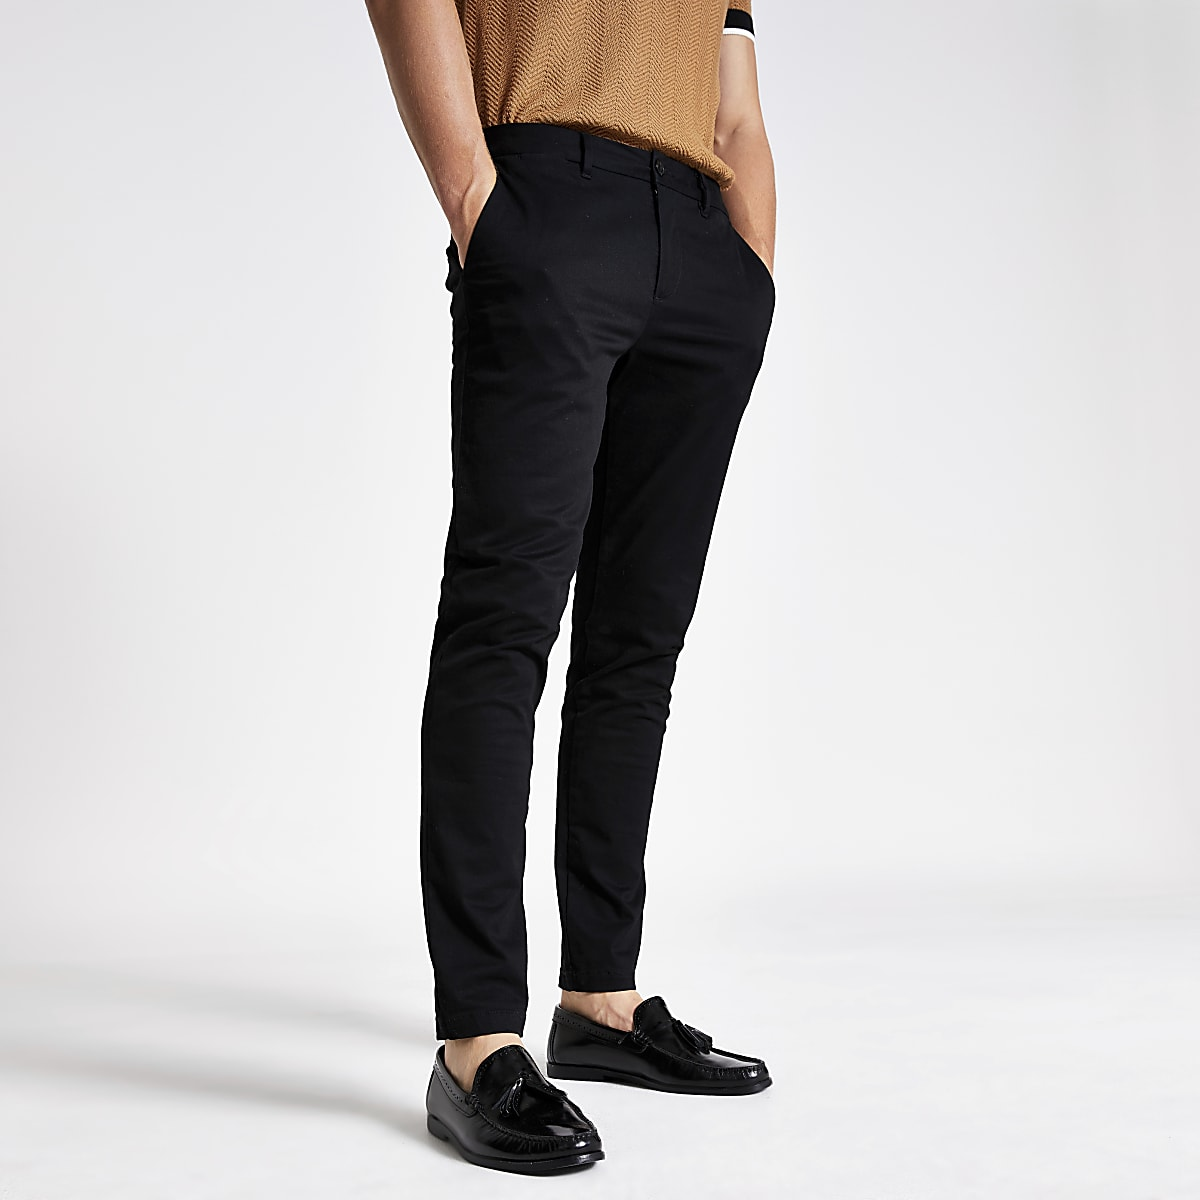 Black skinny fit chino trousers